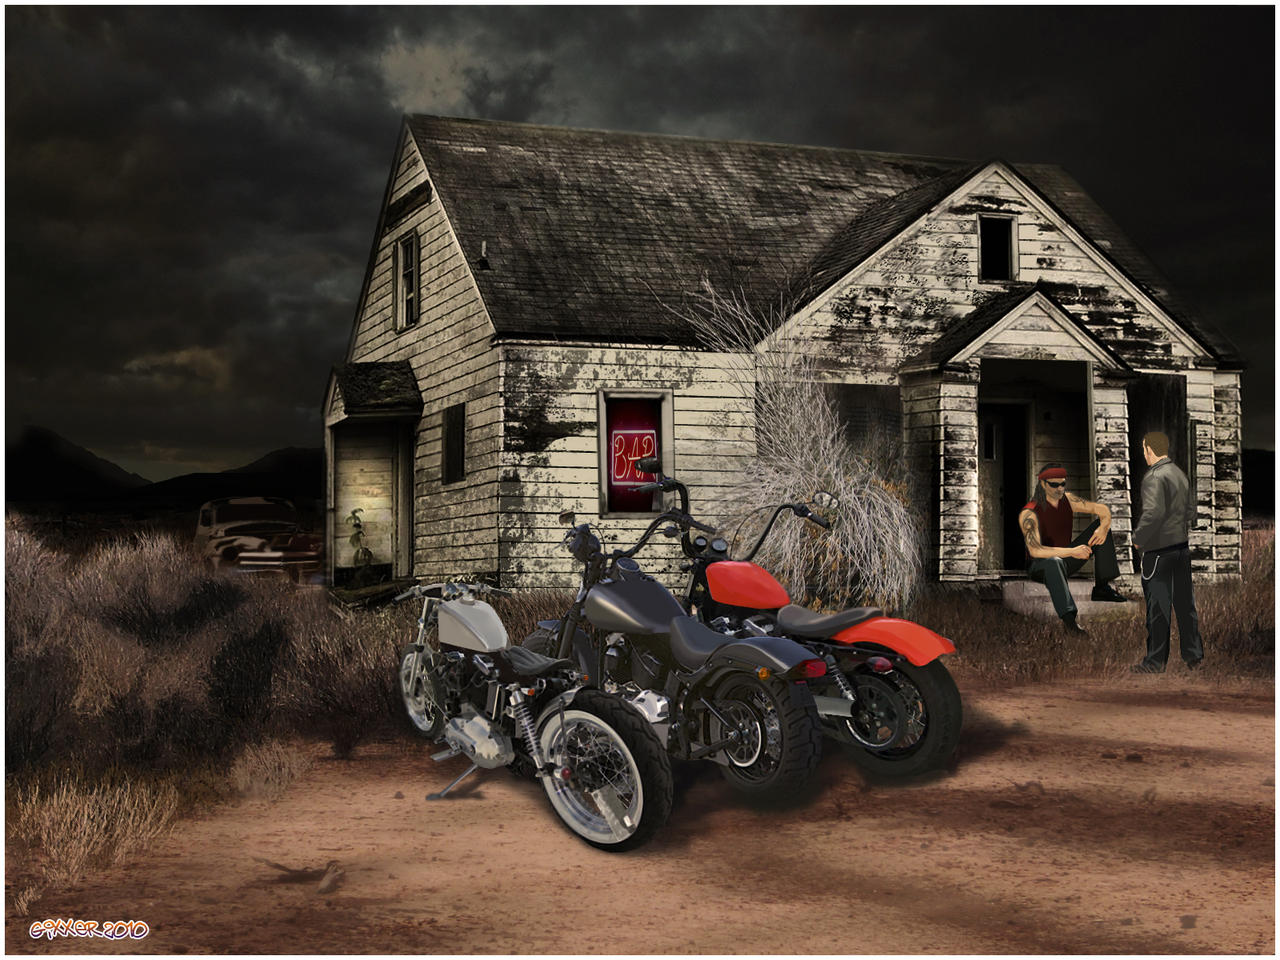 Outlaw Biker Pictures to Pin on Pinterest - PinsDaddy